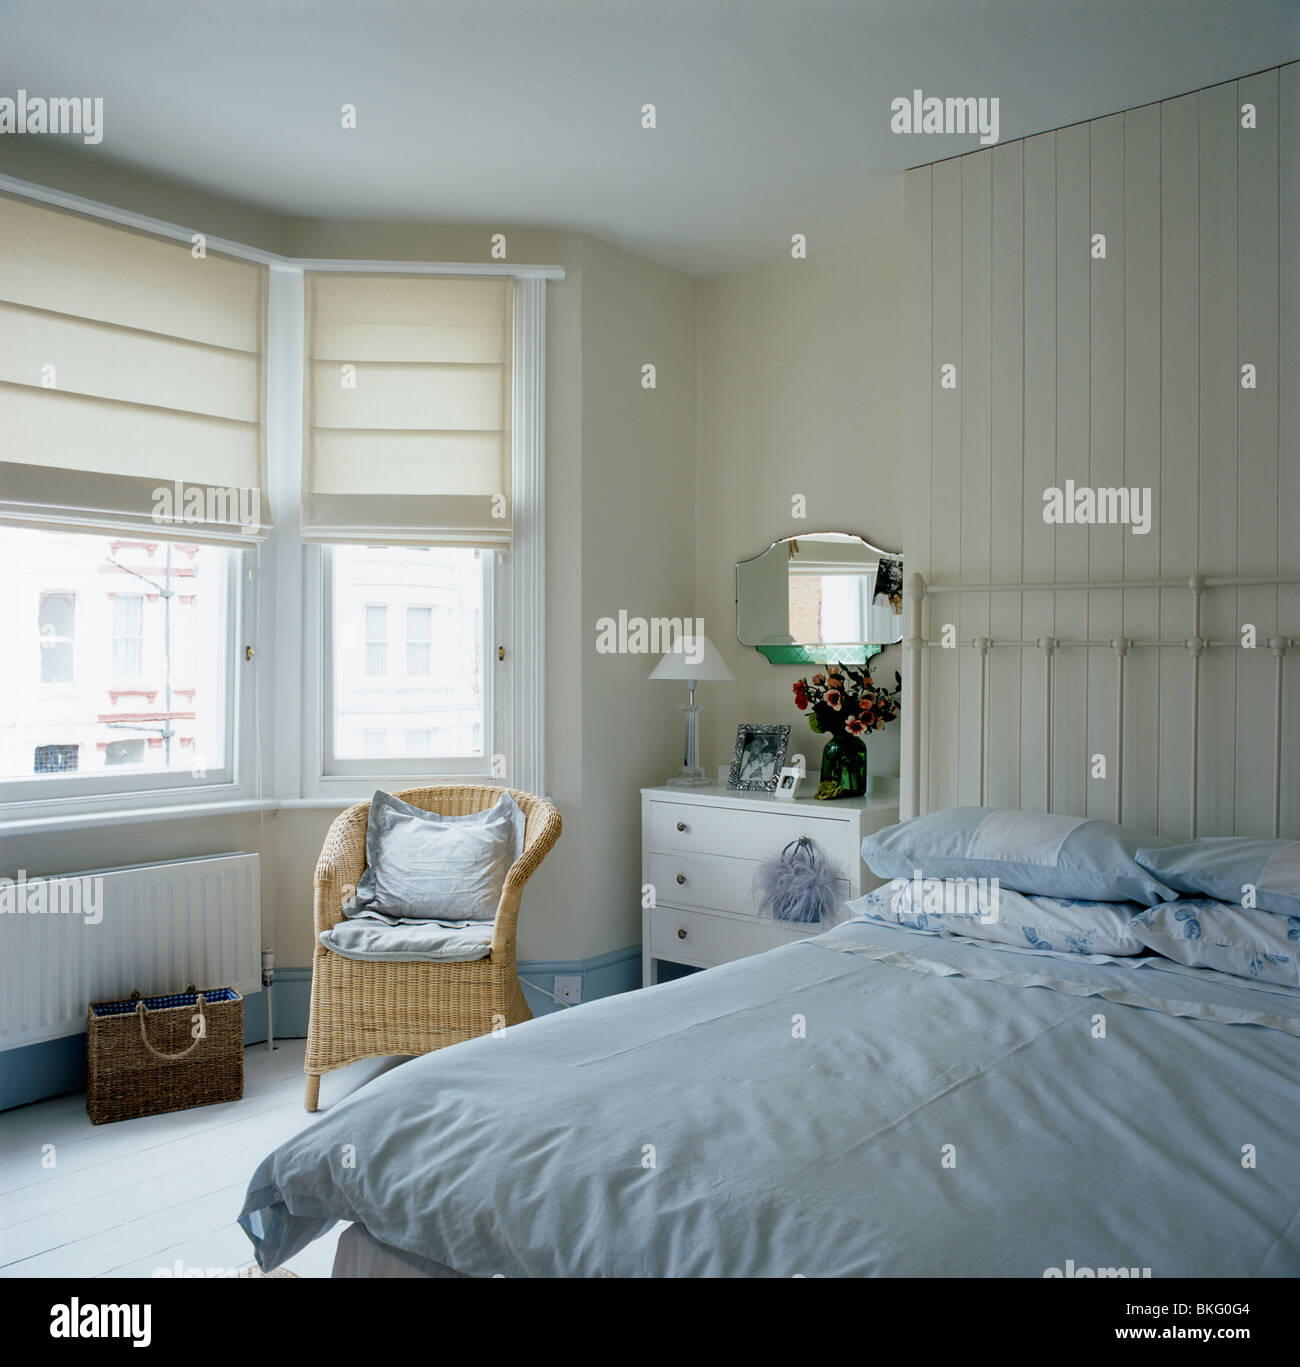 Bed in bay window - Stock Photo Wicker Armchair In Front Of Bay Window With Cream Blinds In Townhouse Bedroom With Bed With Pale Blue Bedlinen